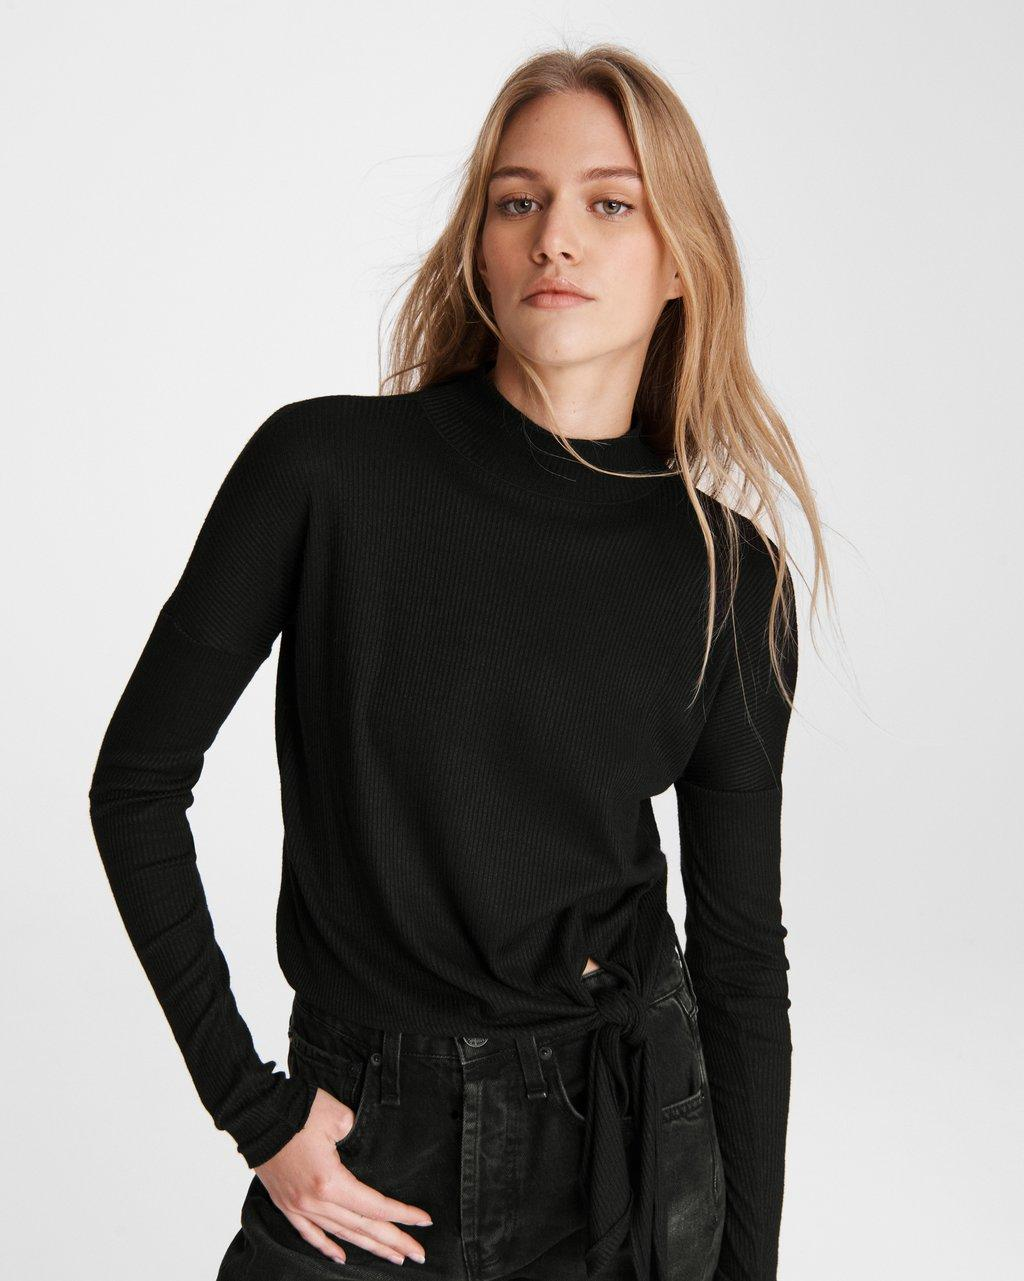 The Rib Knit Tie Turtleneck